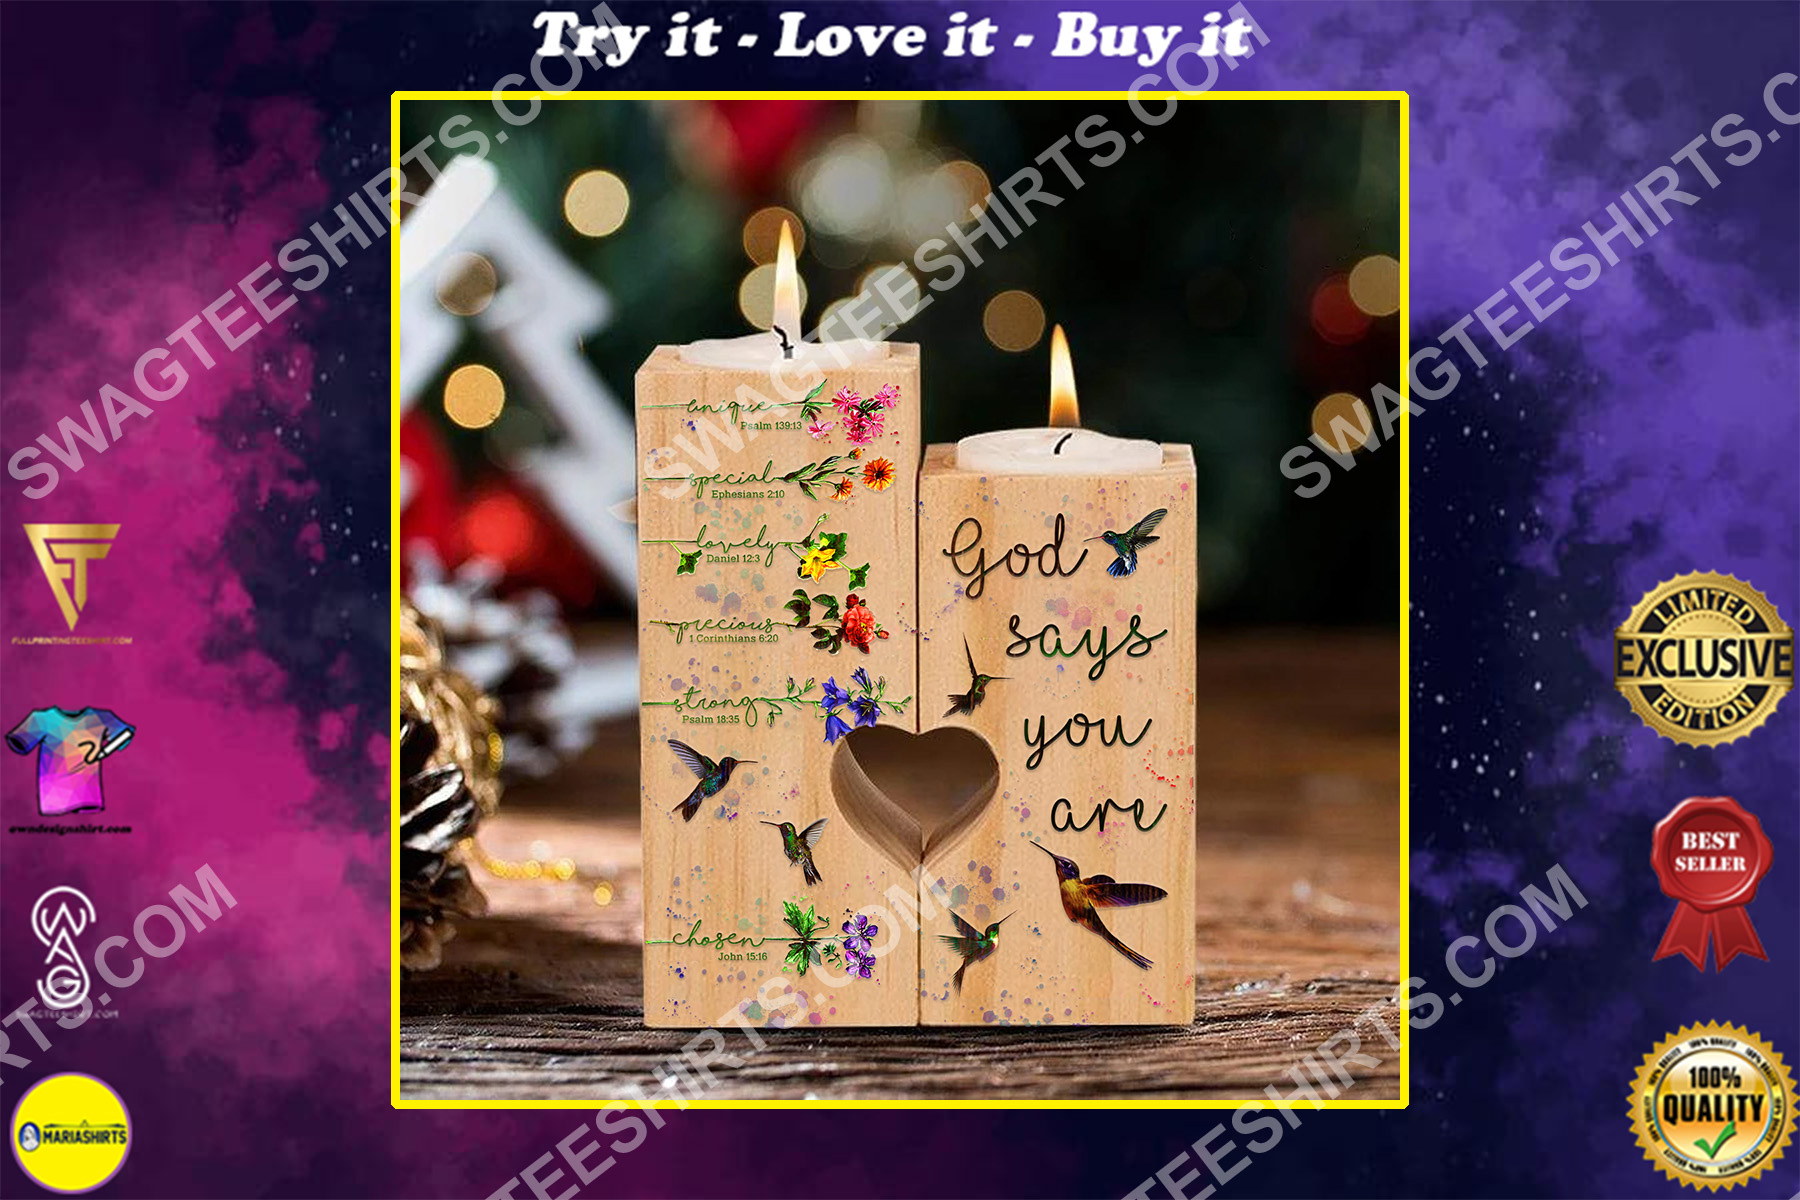 God say you are unique special lovely precious strong candle holder